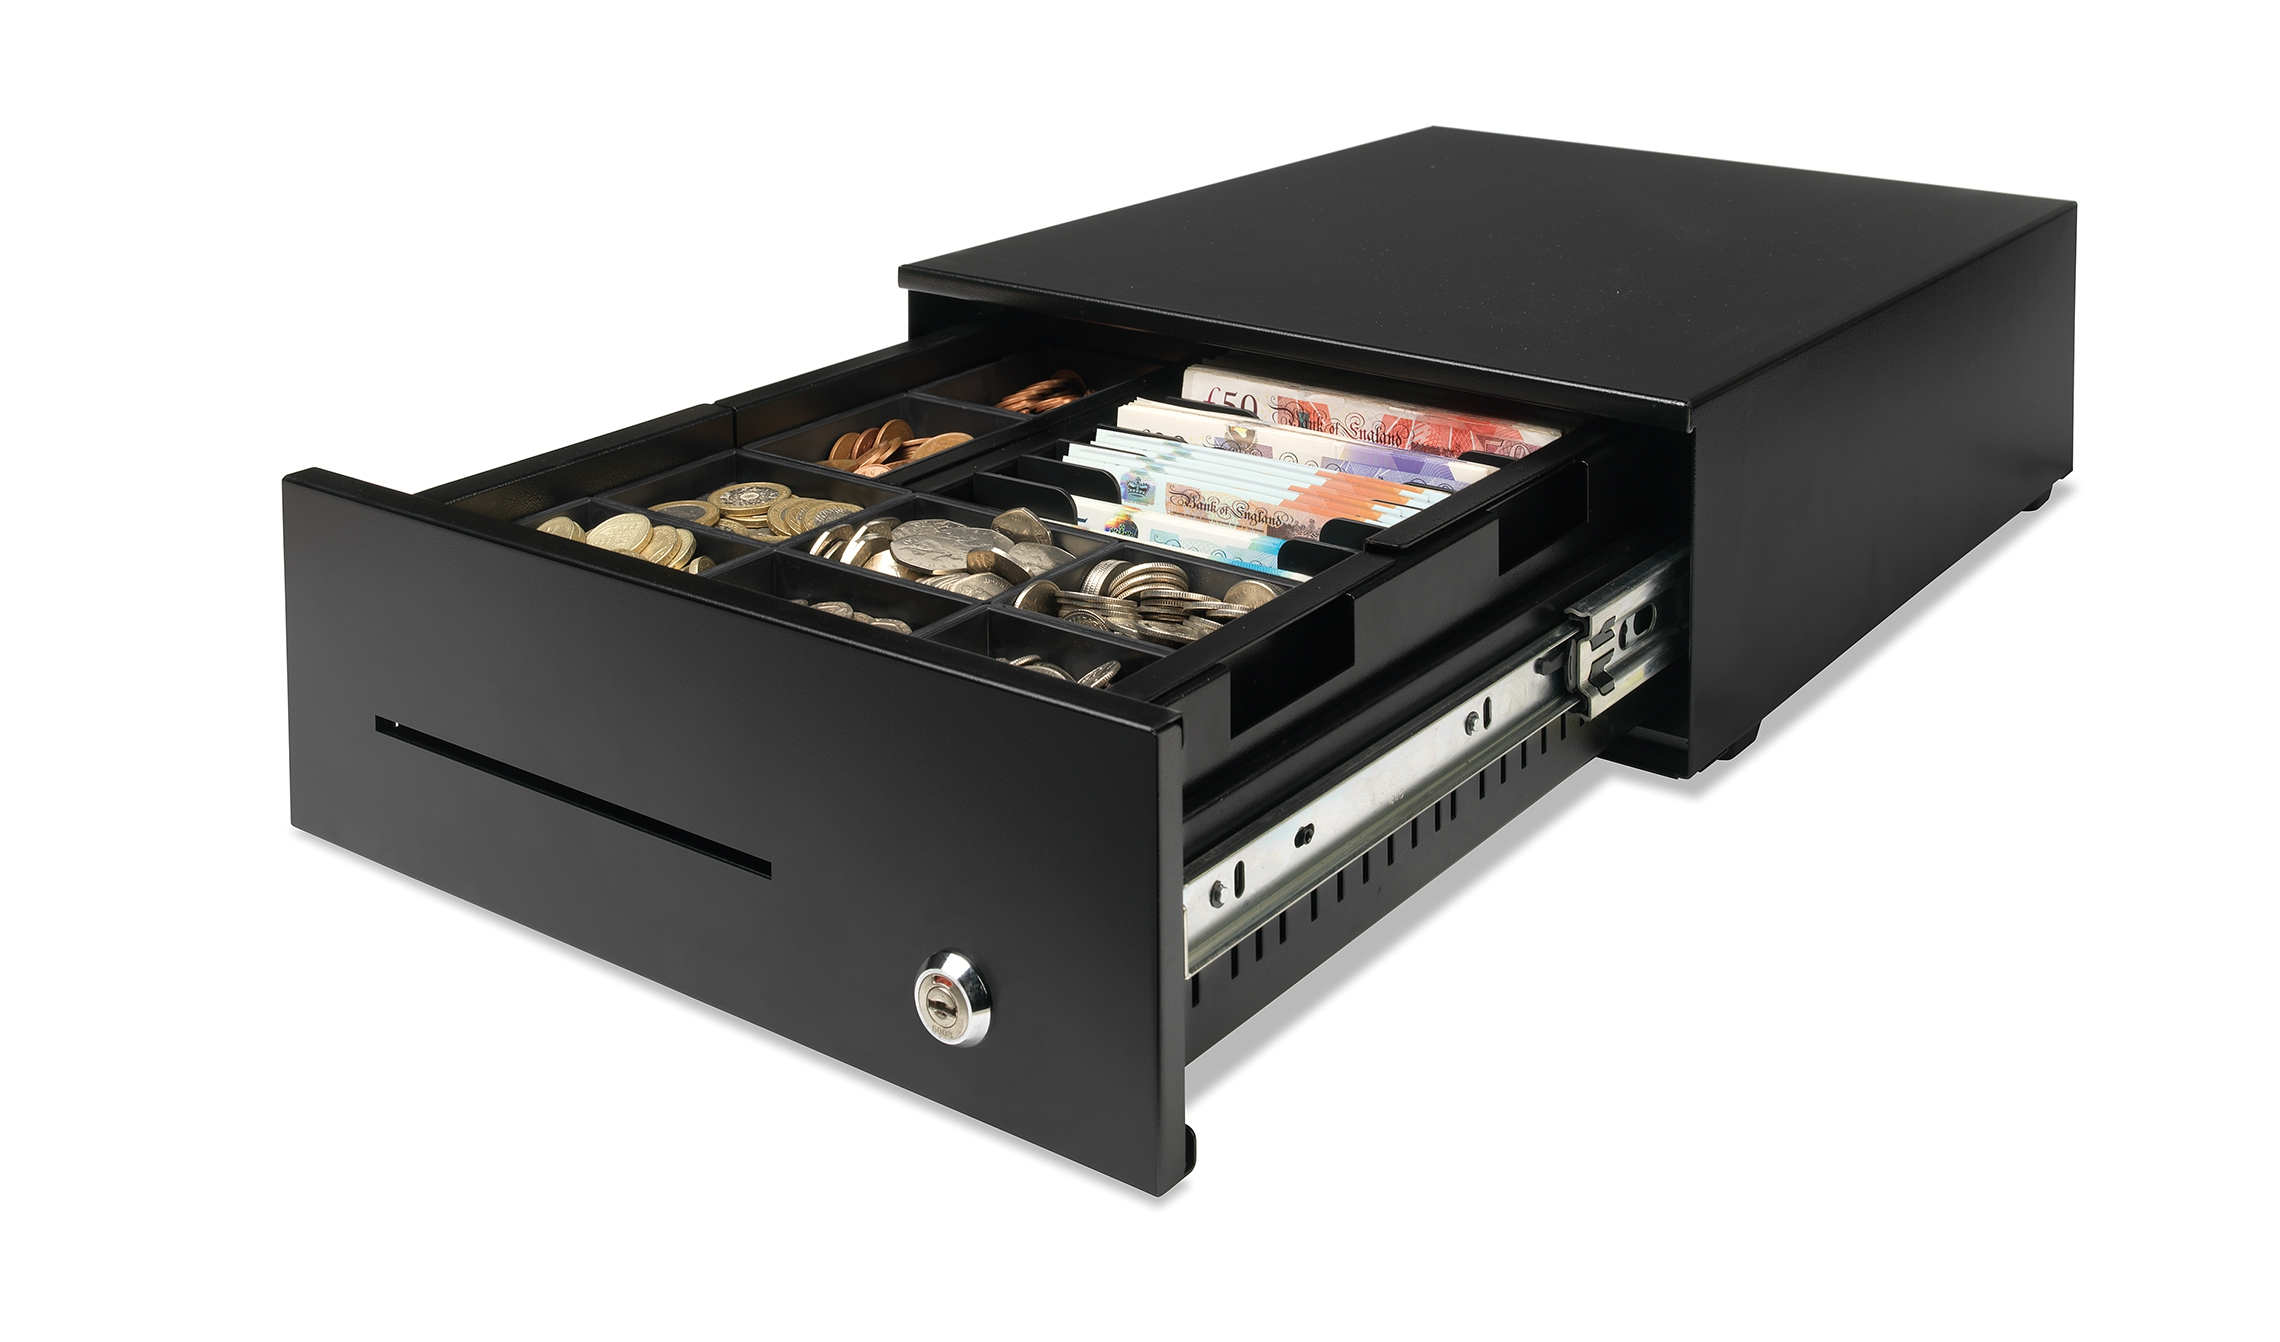 safescan-3342-cash-drawer